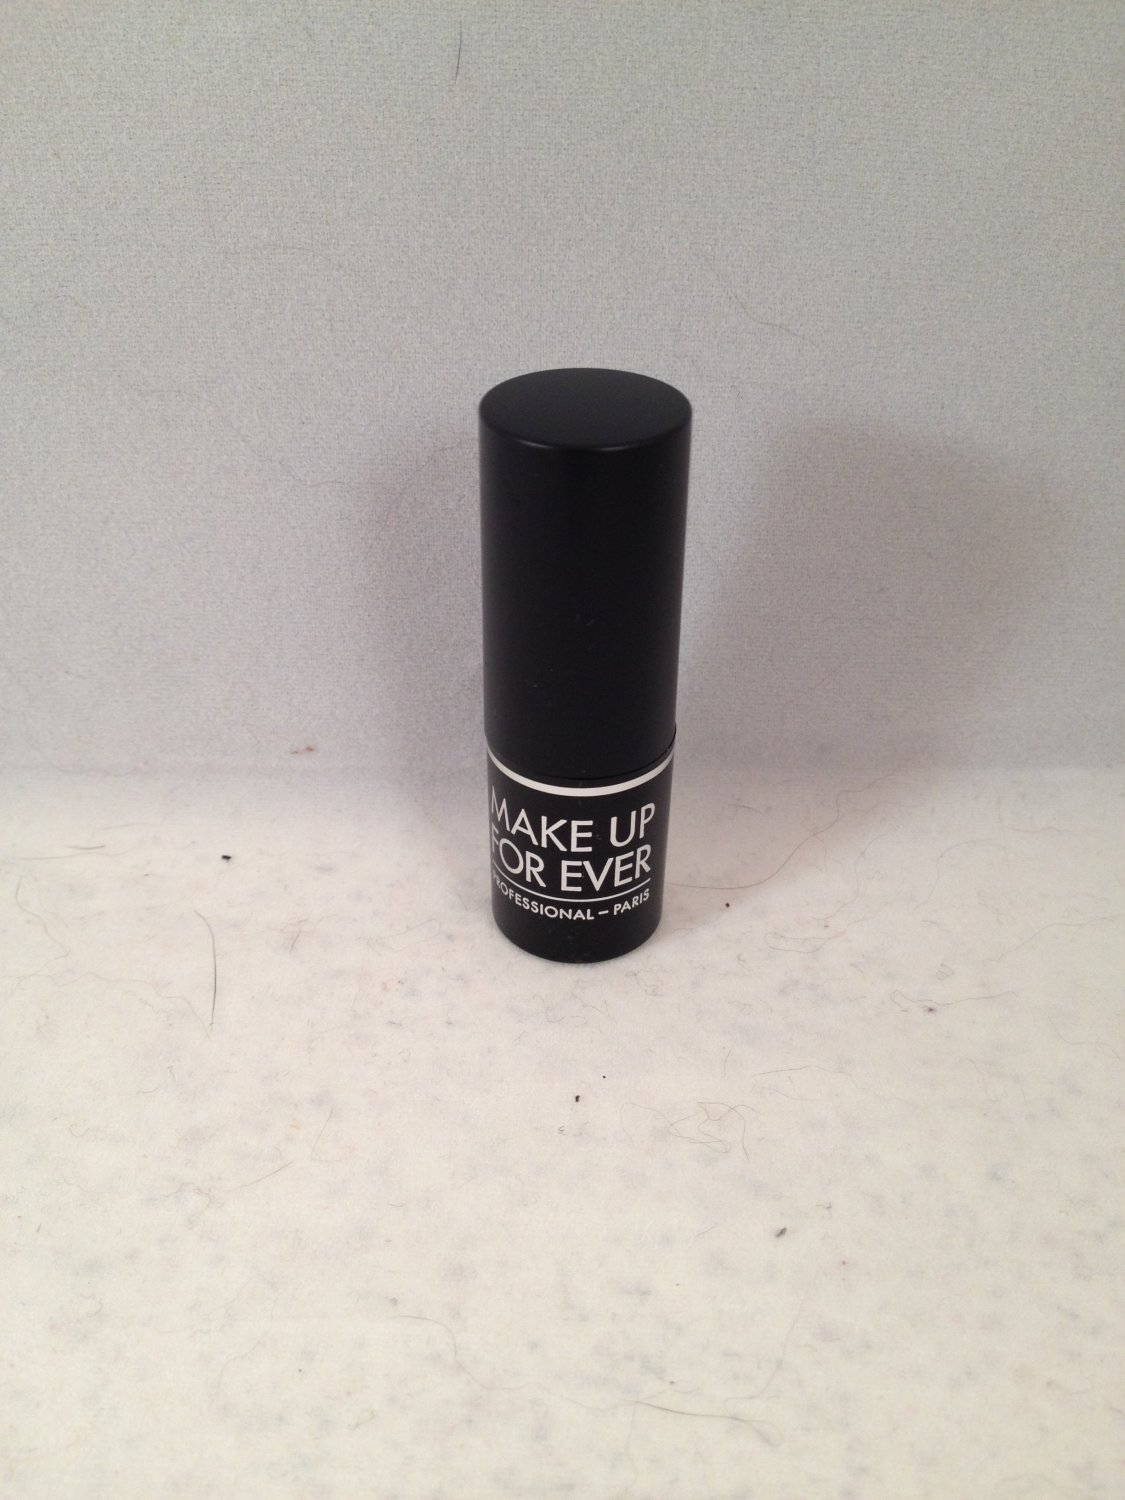 Make Up For Ever Artist Rouge Lipstick M-401 Matte Hot Red travel size